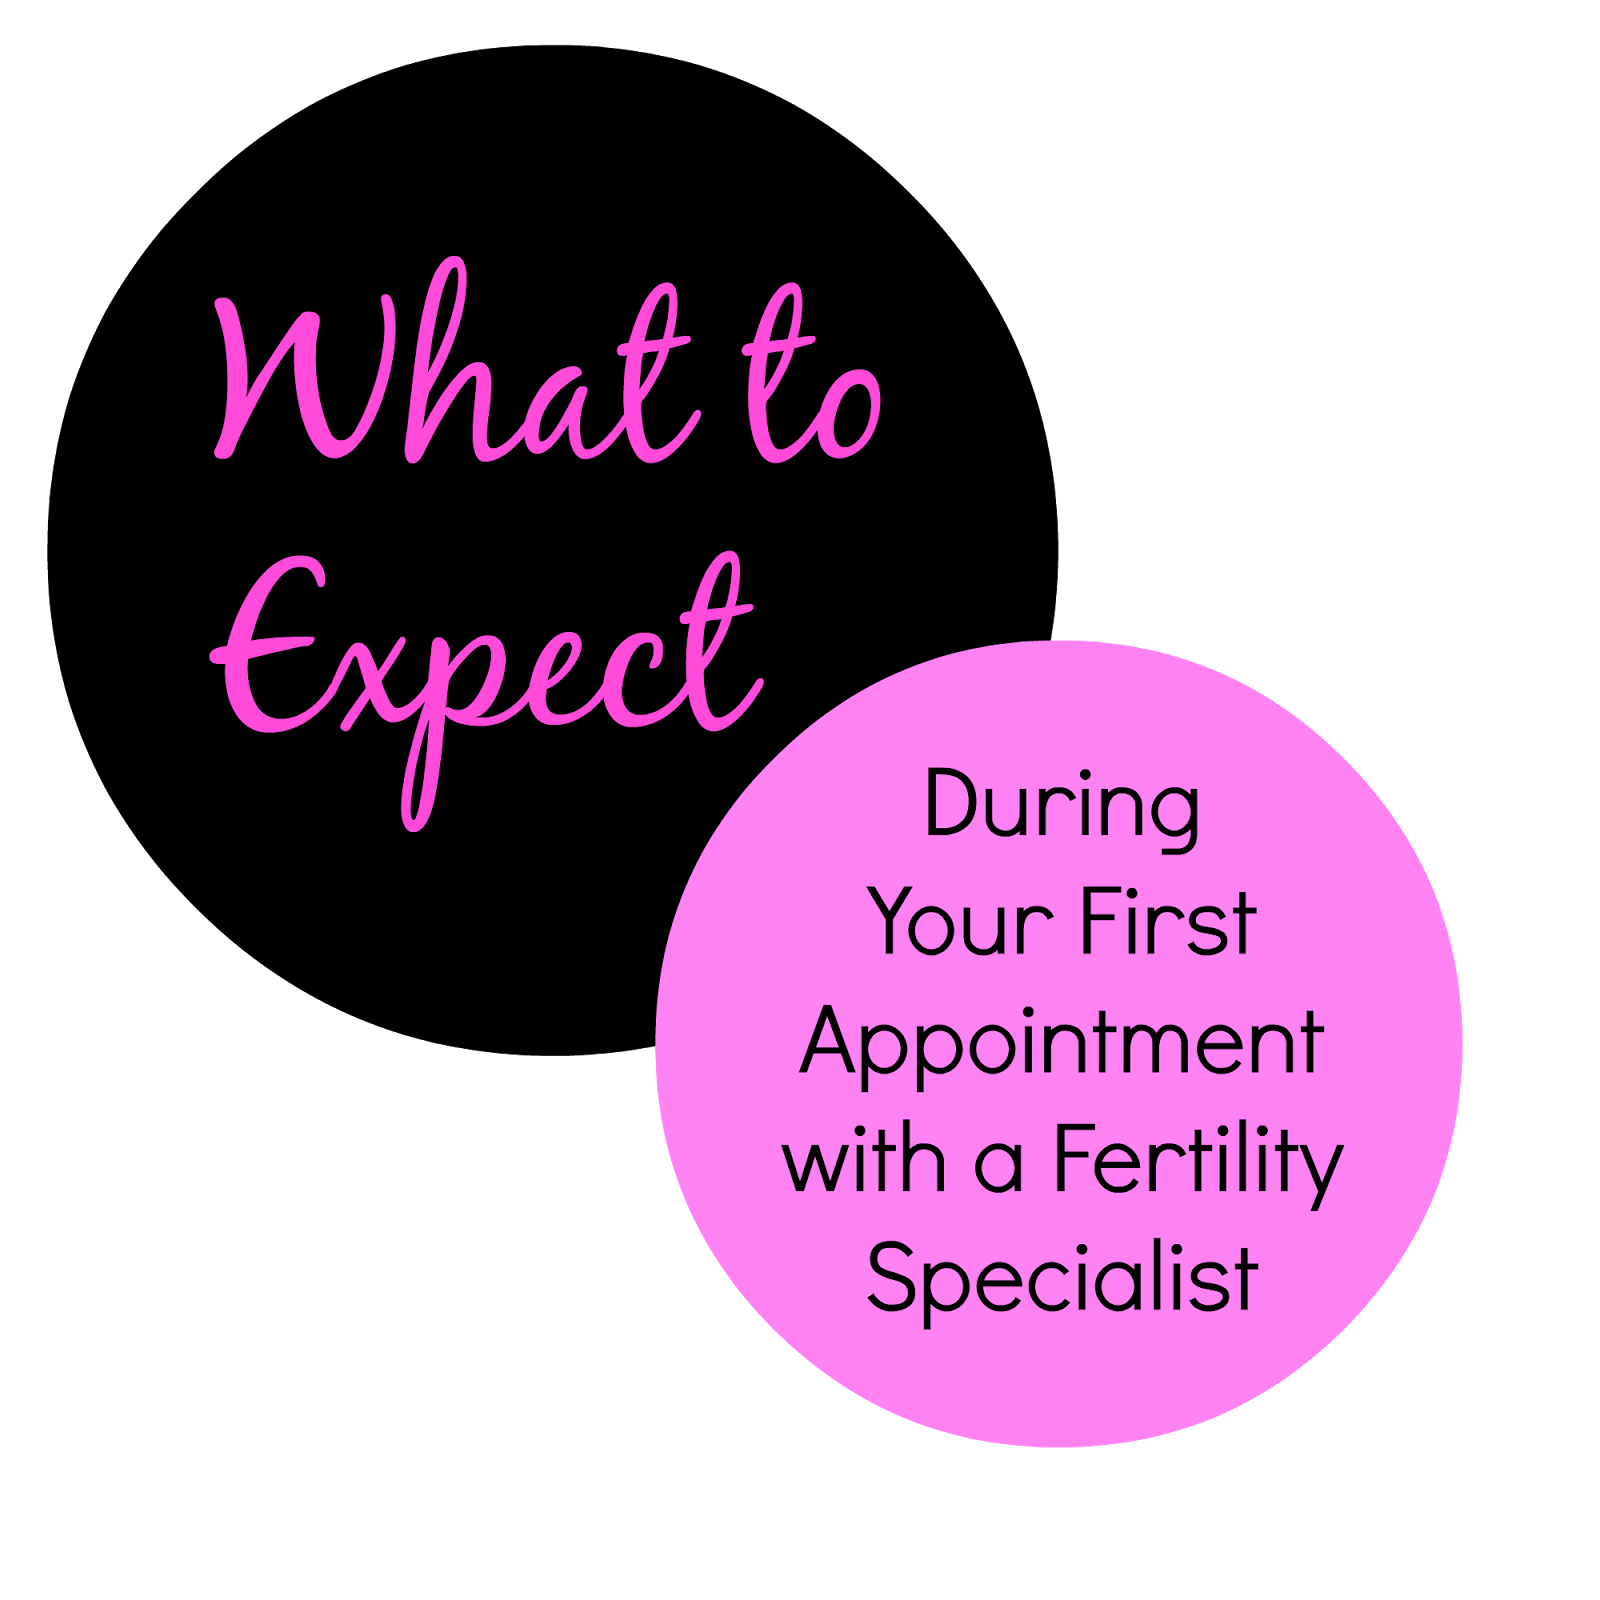 Infertility Update: My First Appointment with a Fertility Specialist